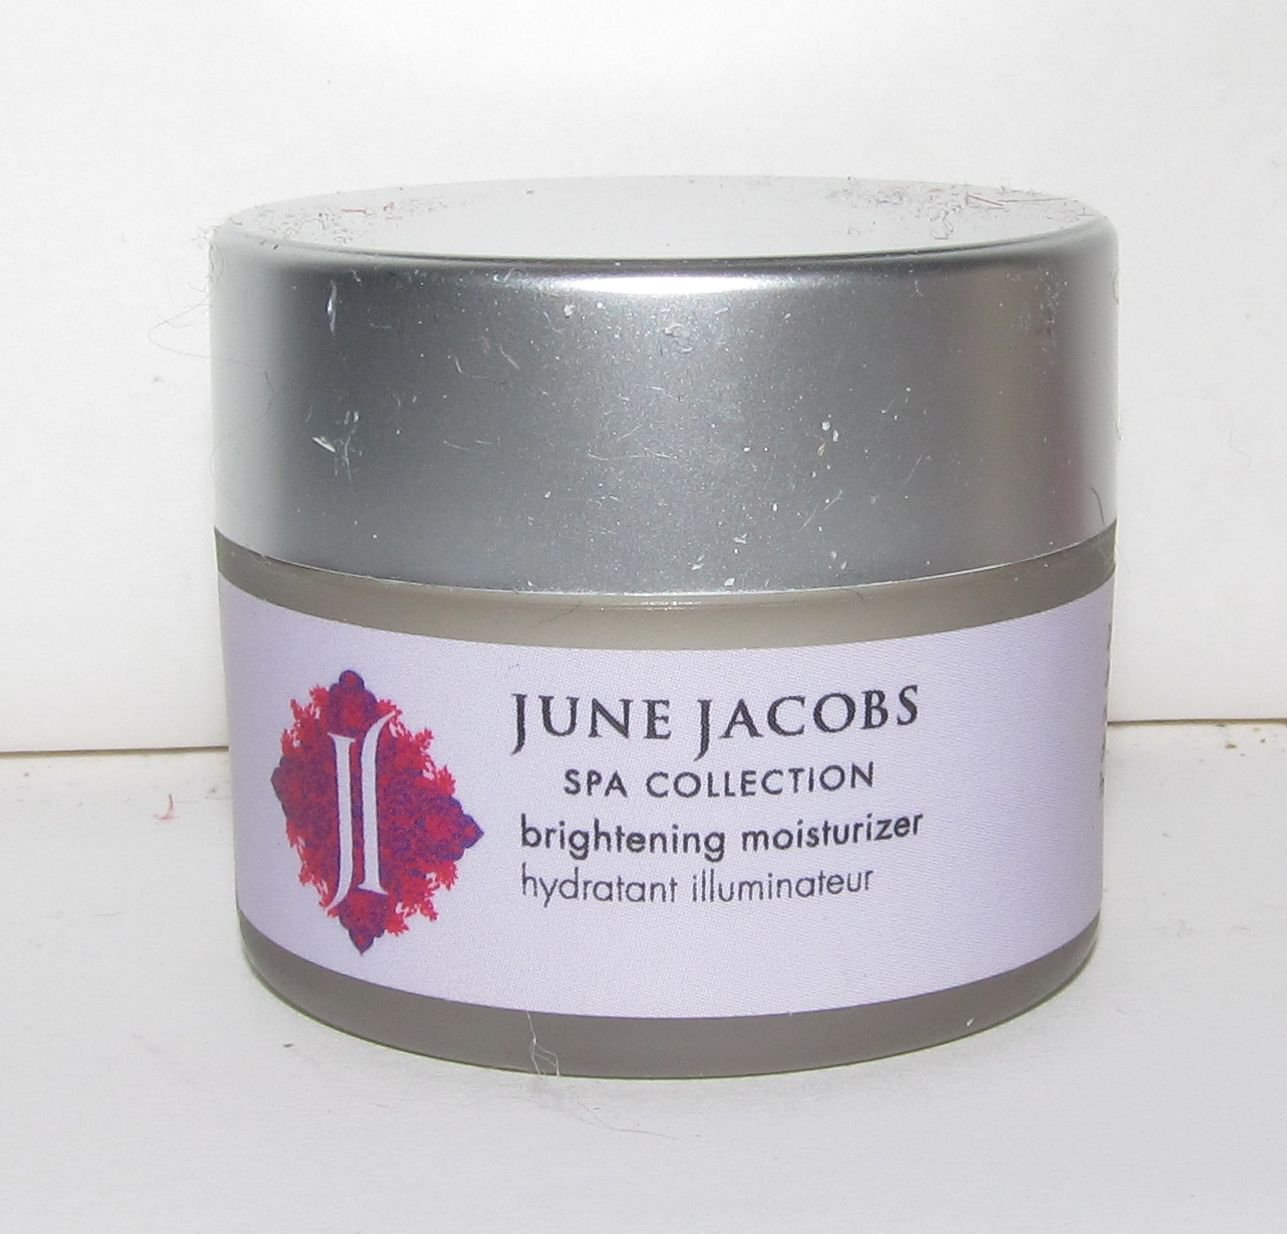 June Jacobs - Brightening Moisturizer Trial Size - NEW